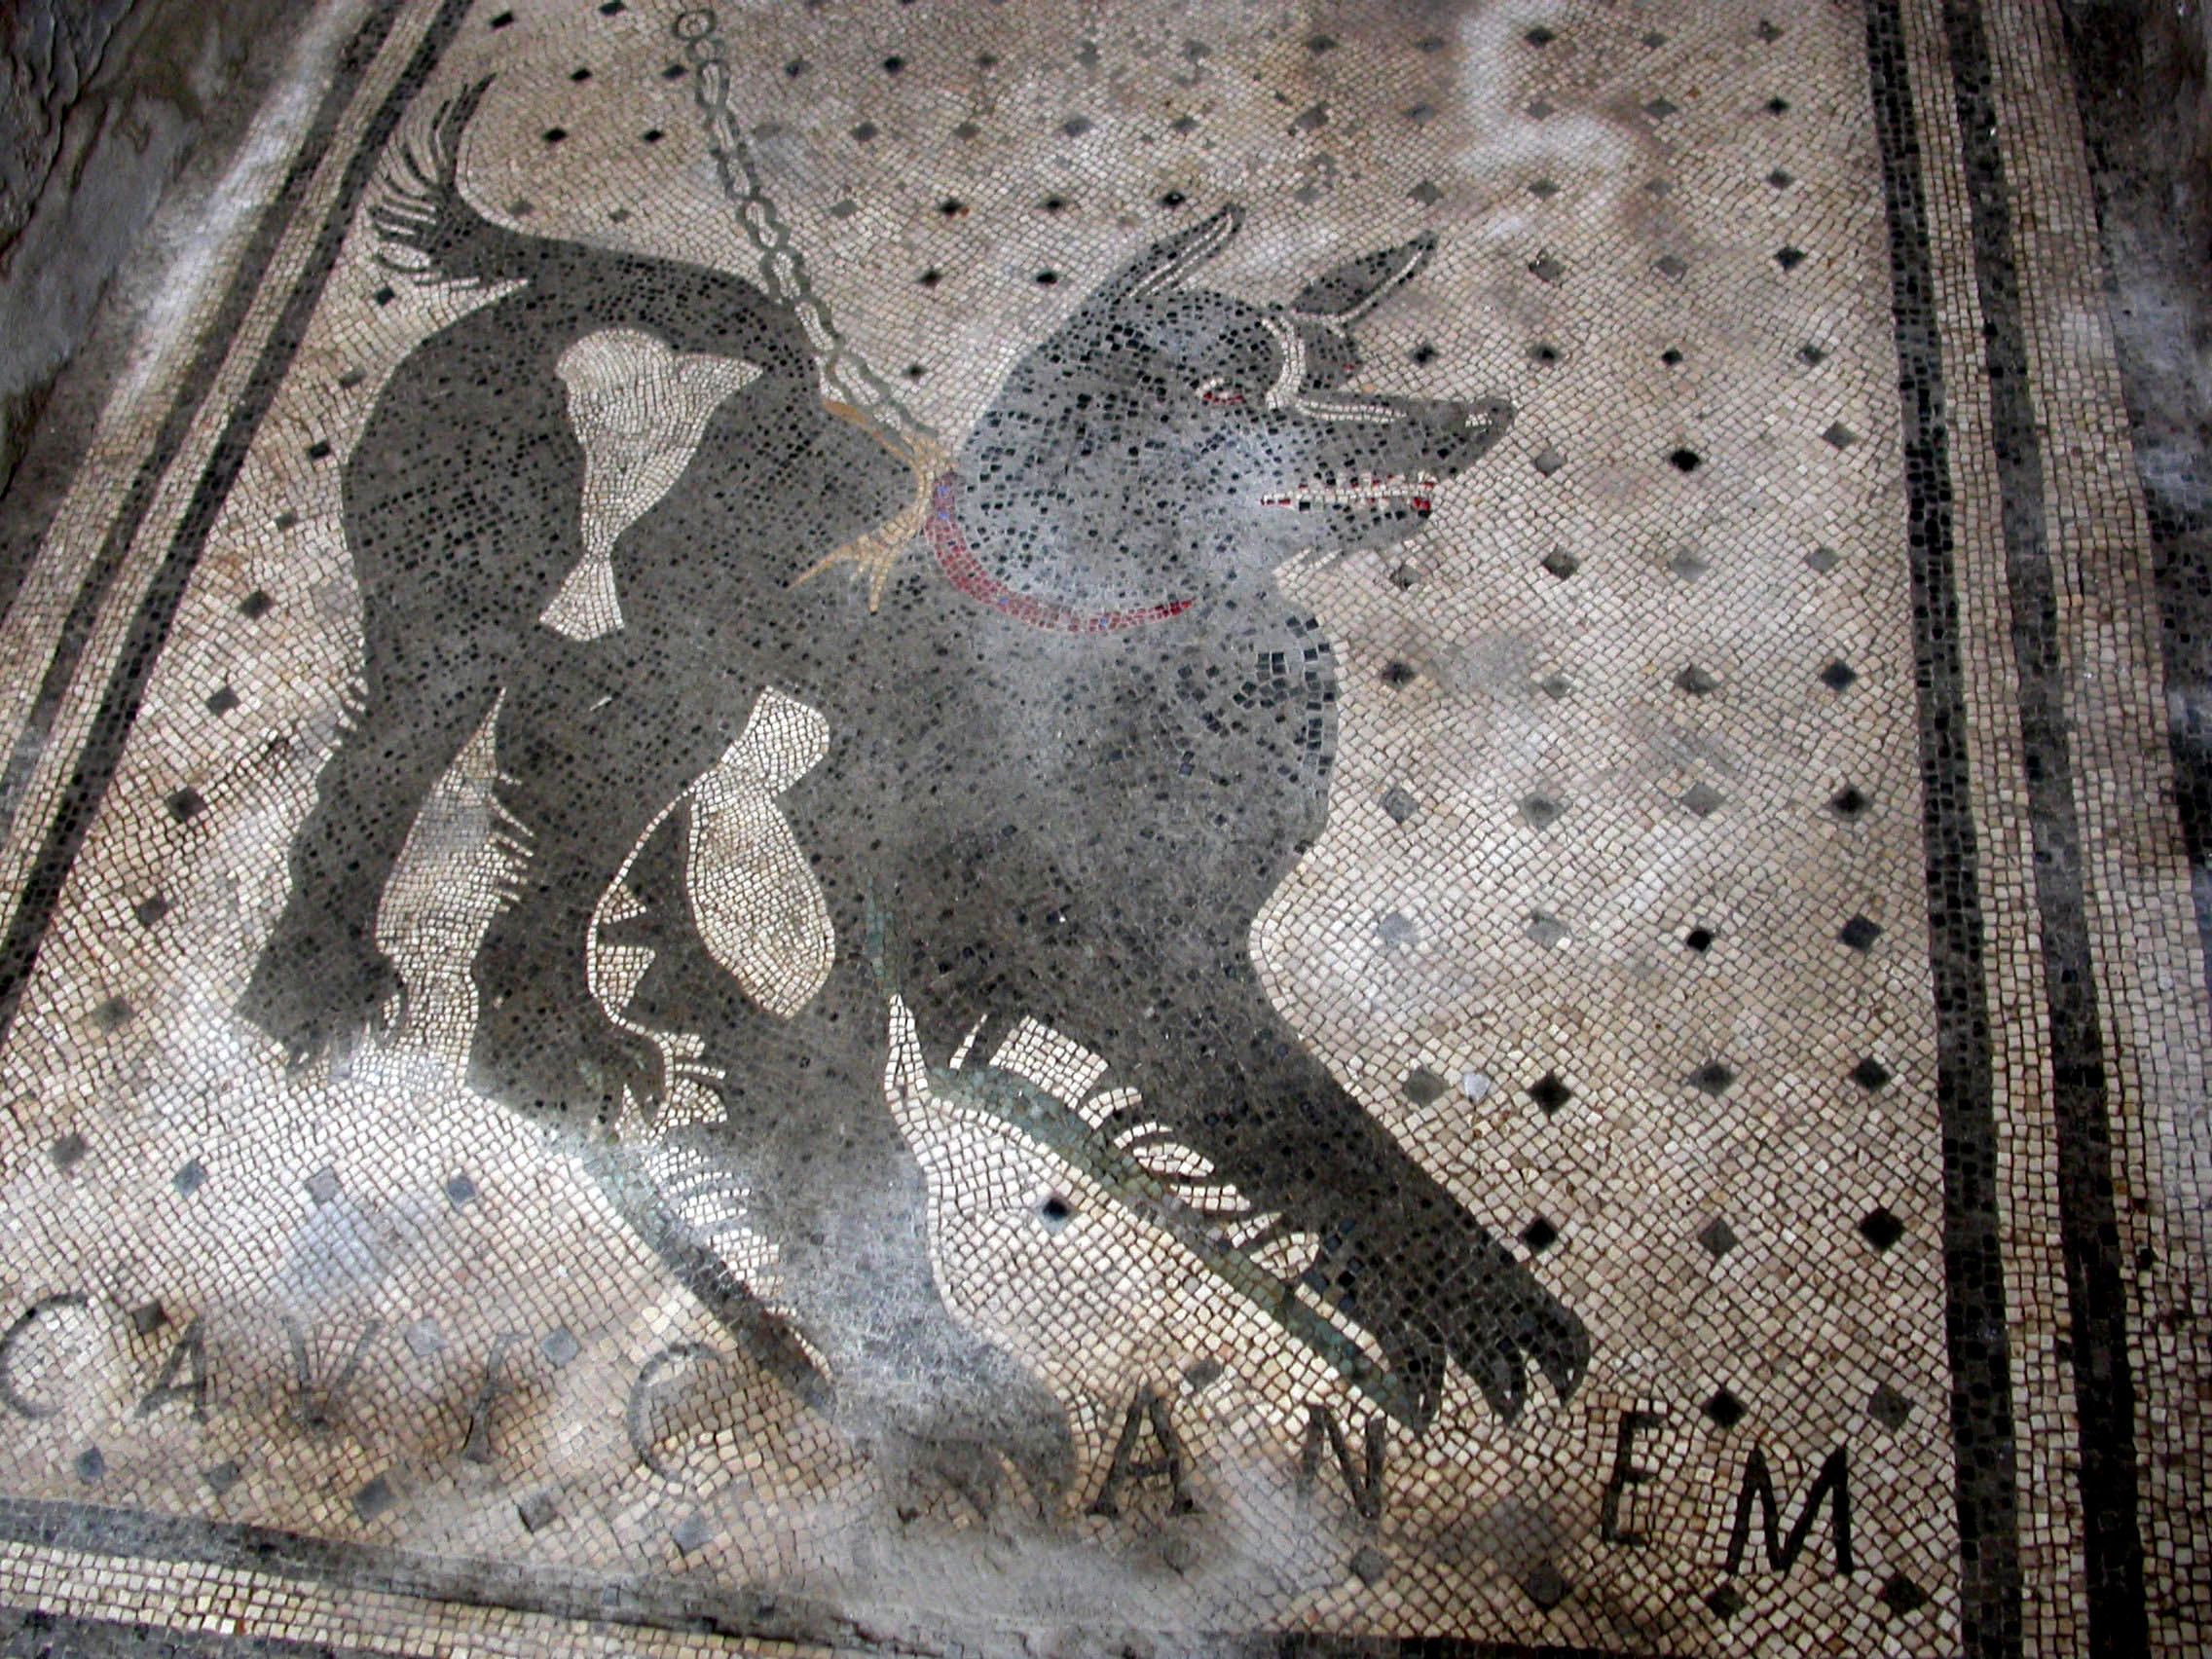 Picture of a Cave Canem dog made out of tiles.